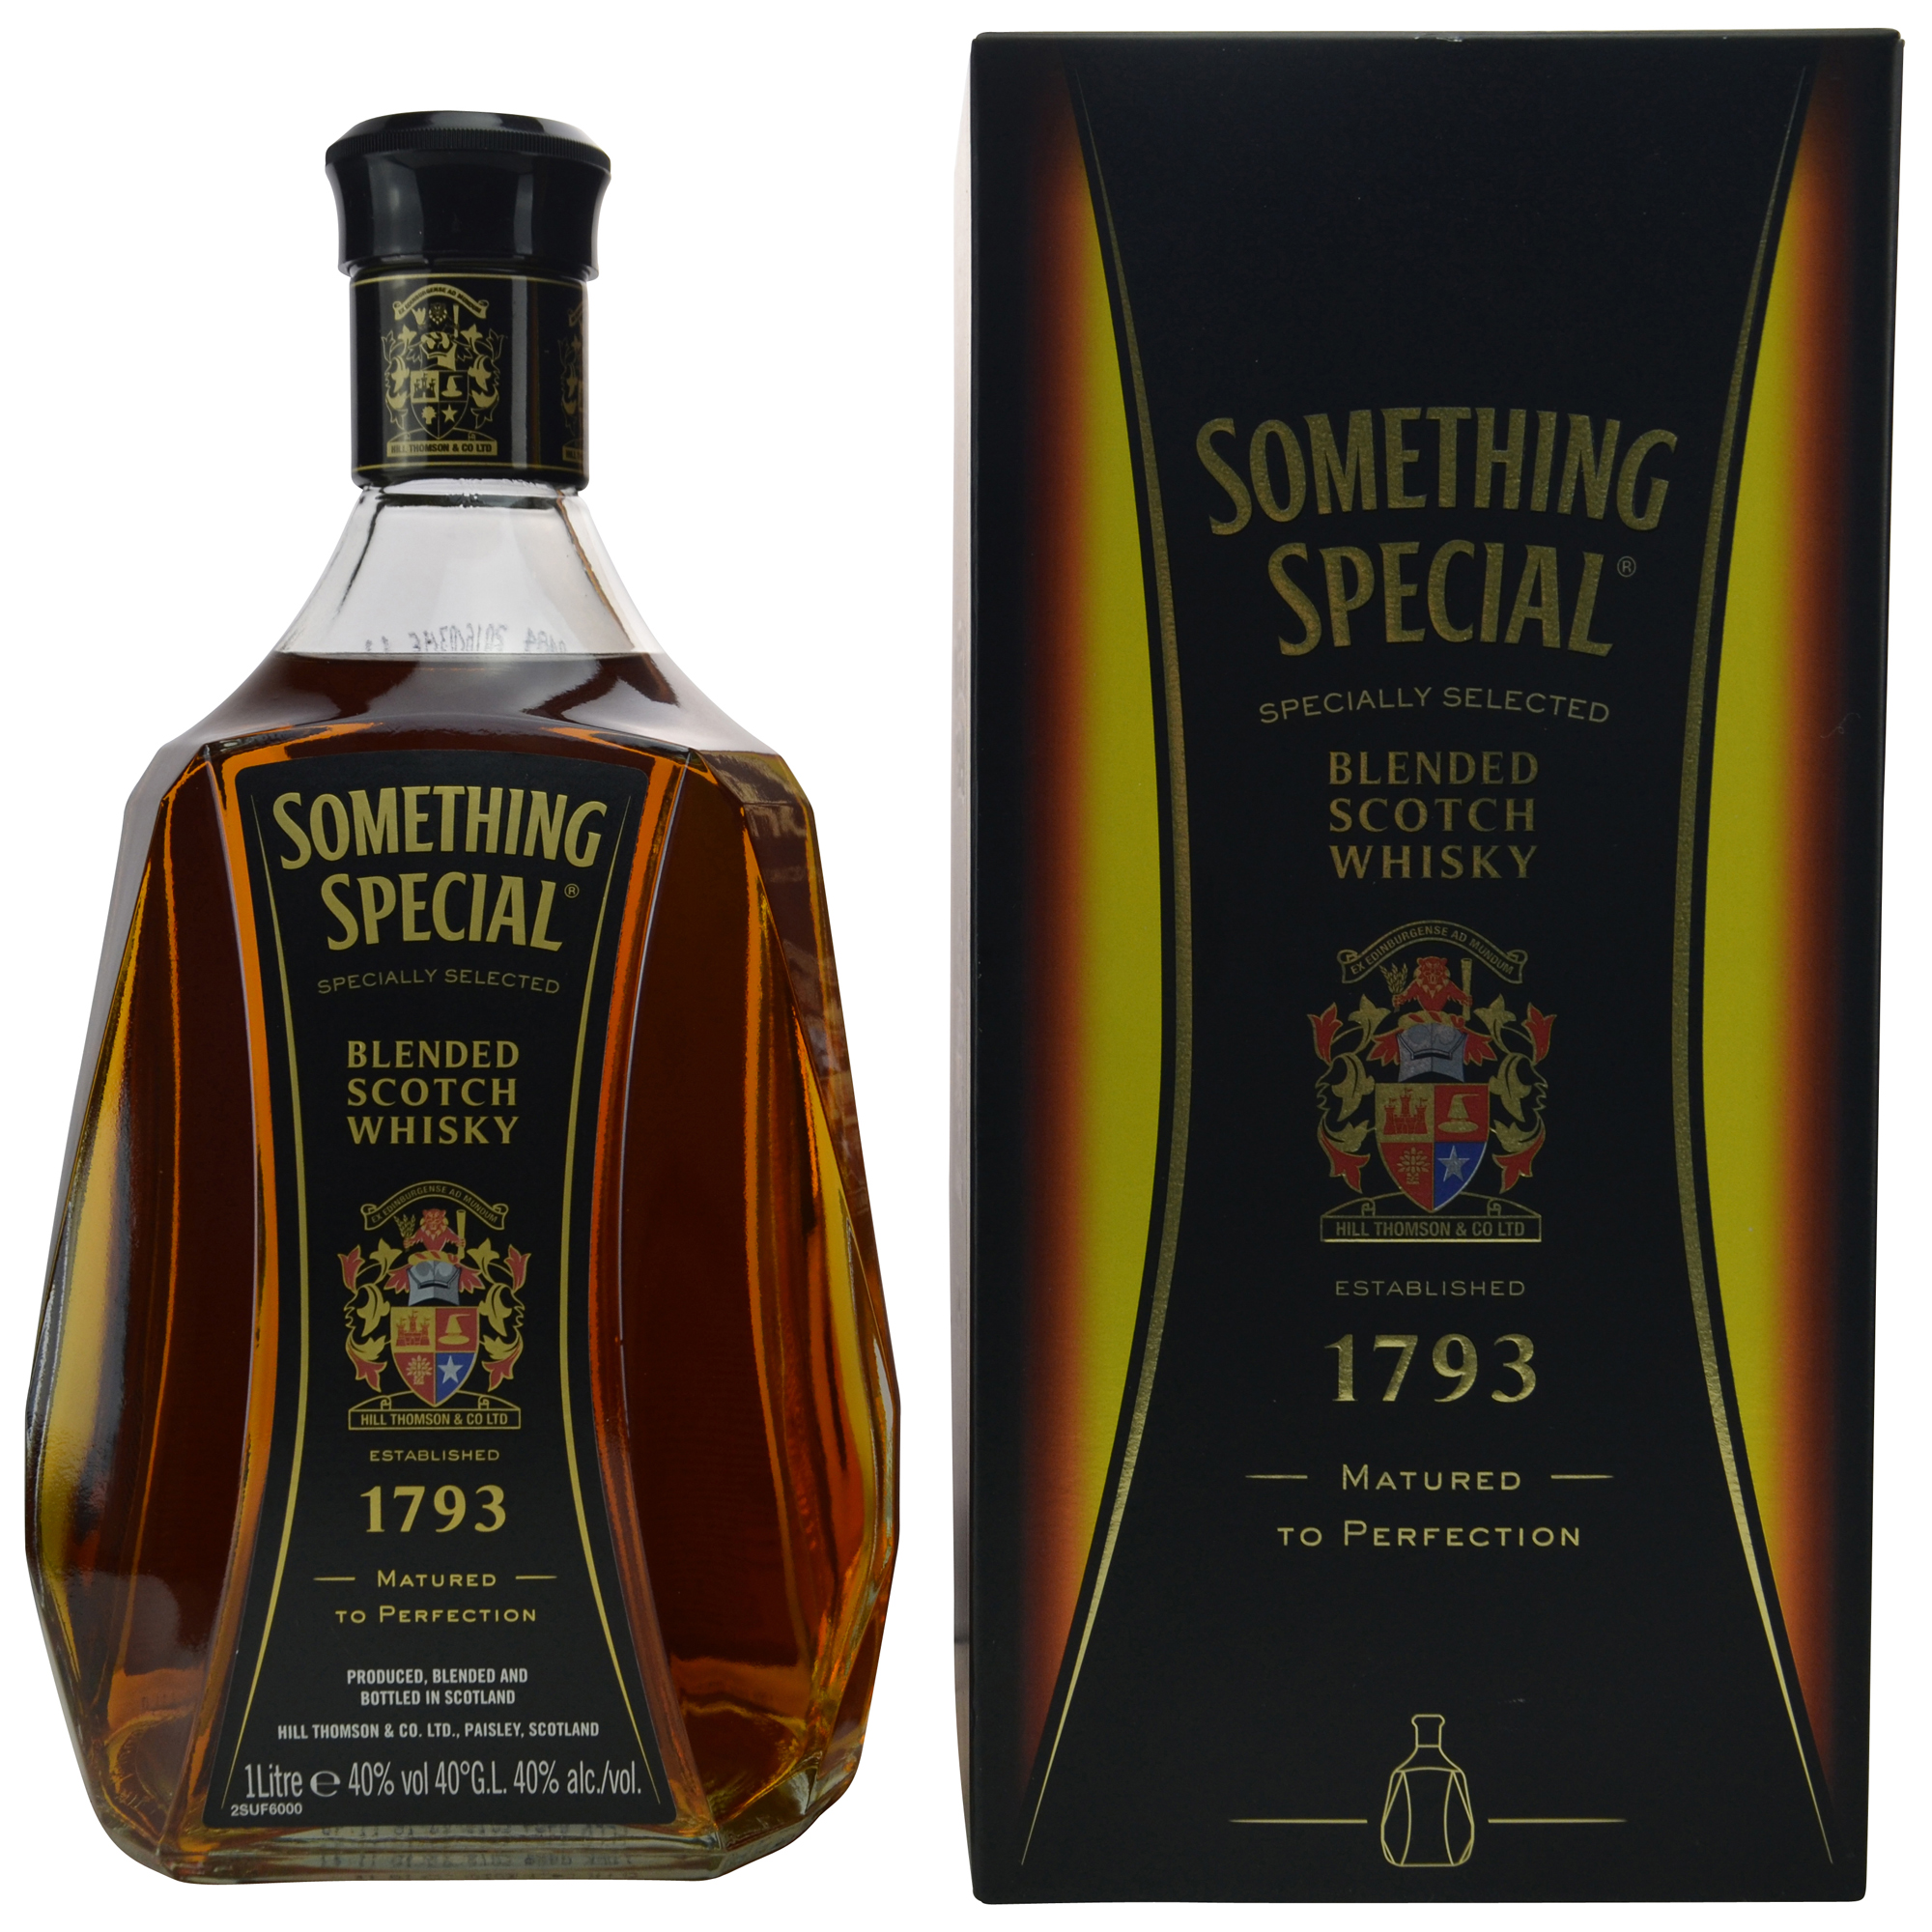 Something Special Blended Scotch Whisky (Liter) hier kaufen! | whic.de